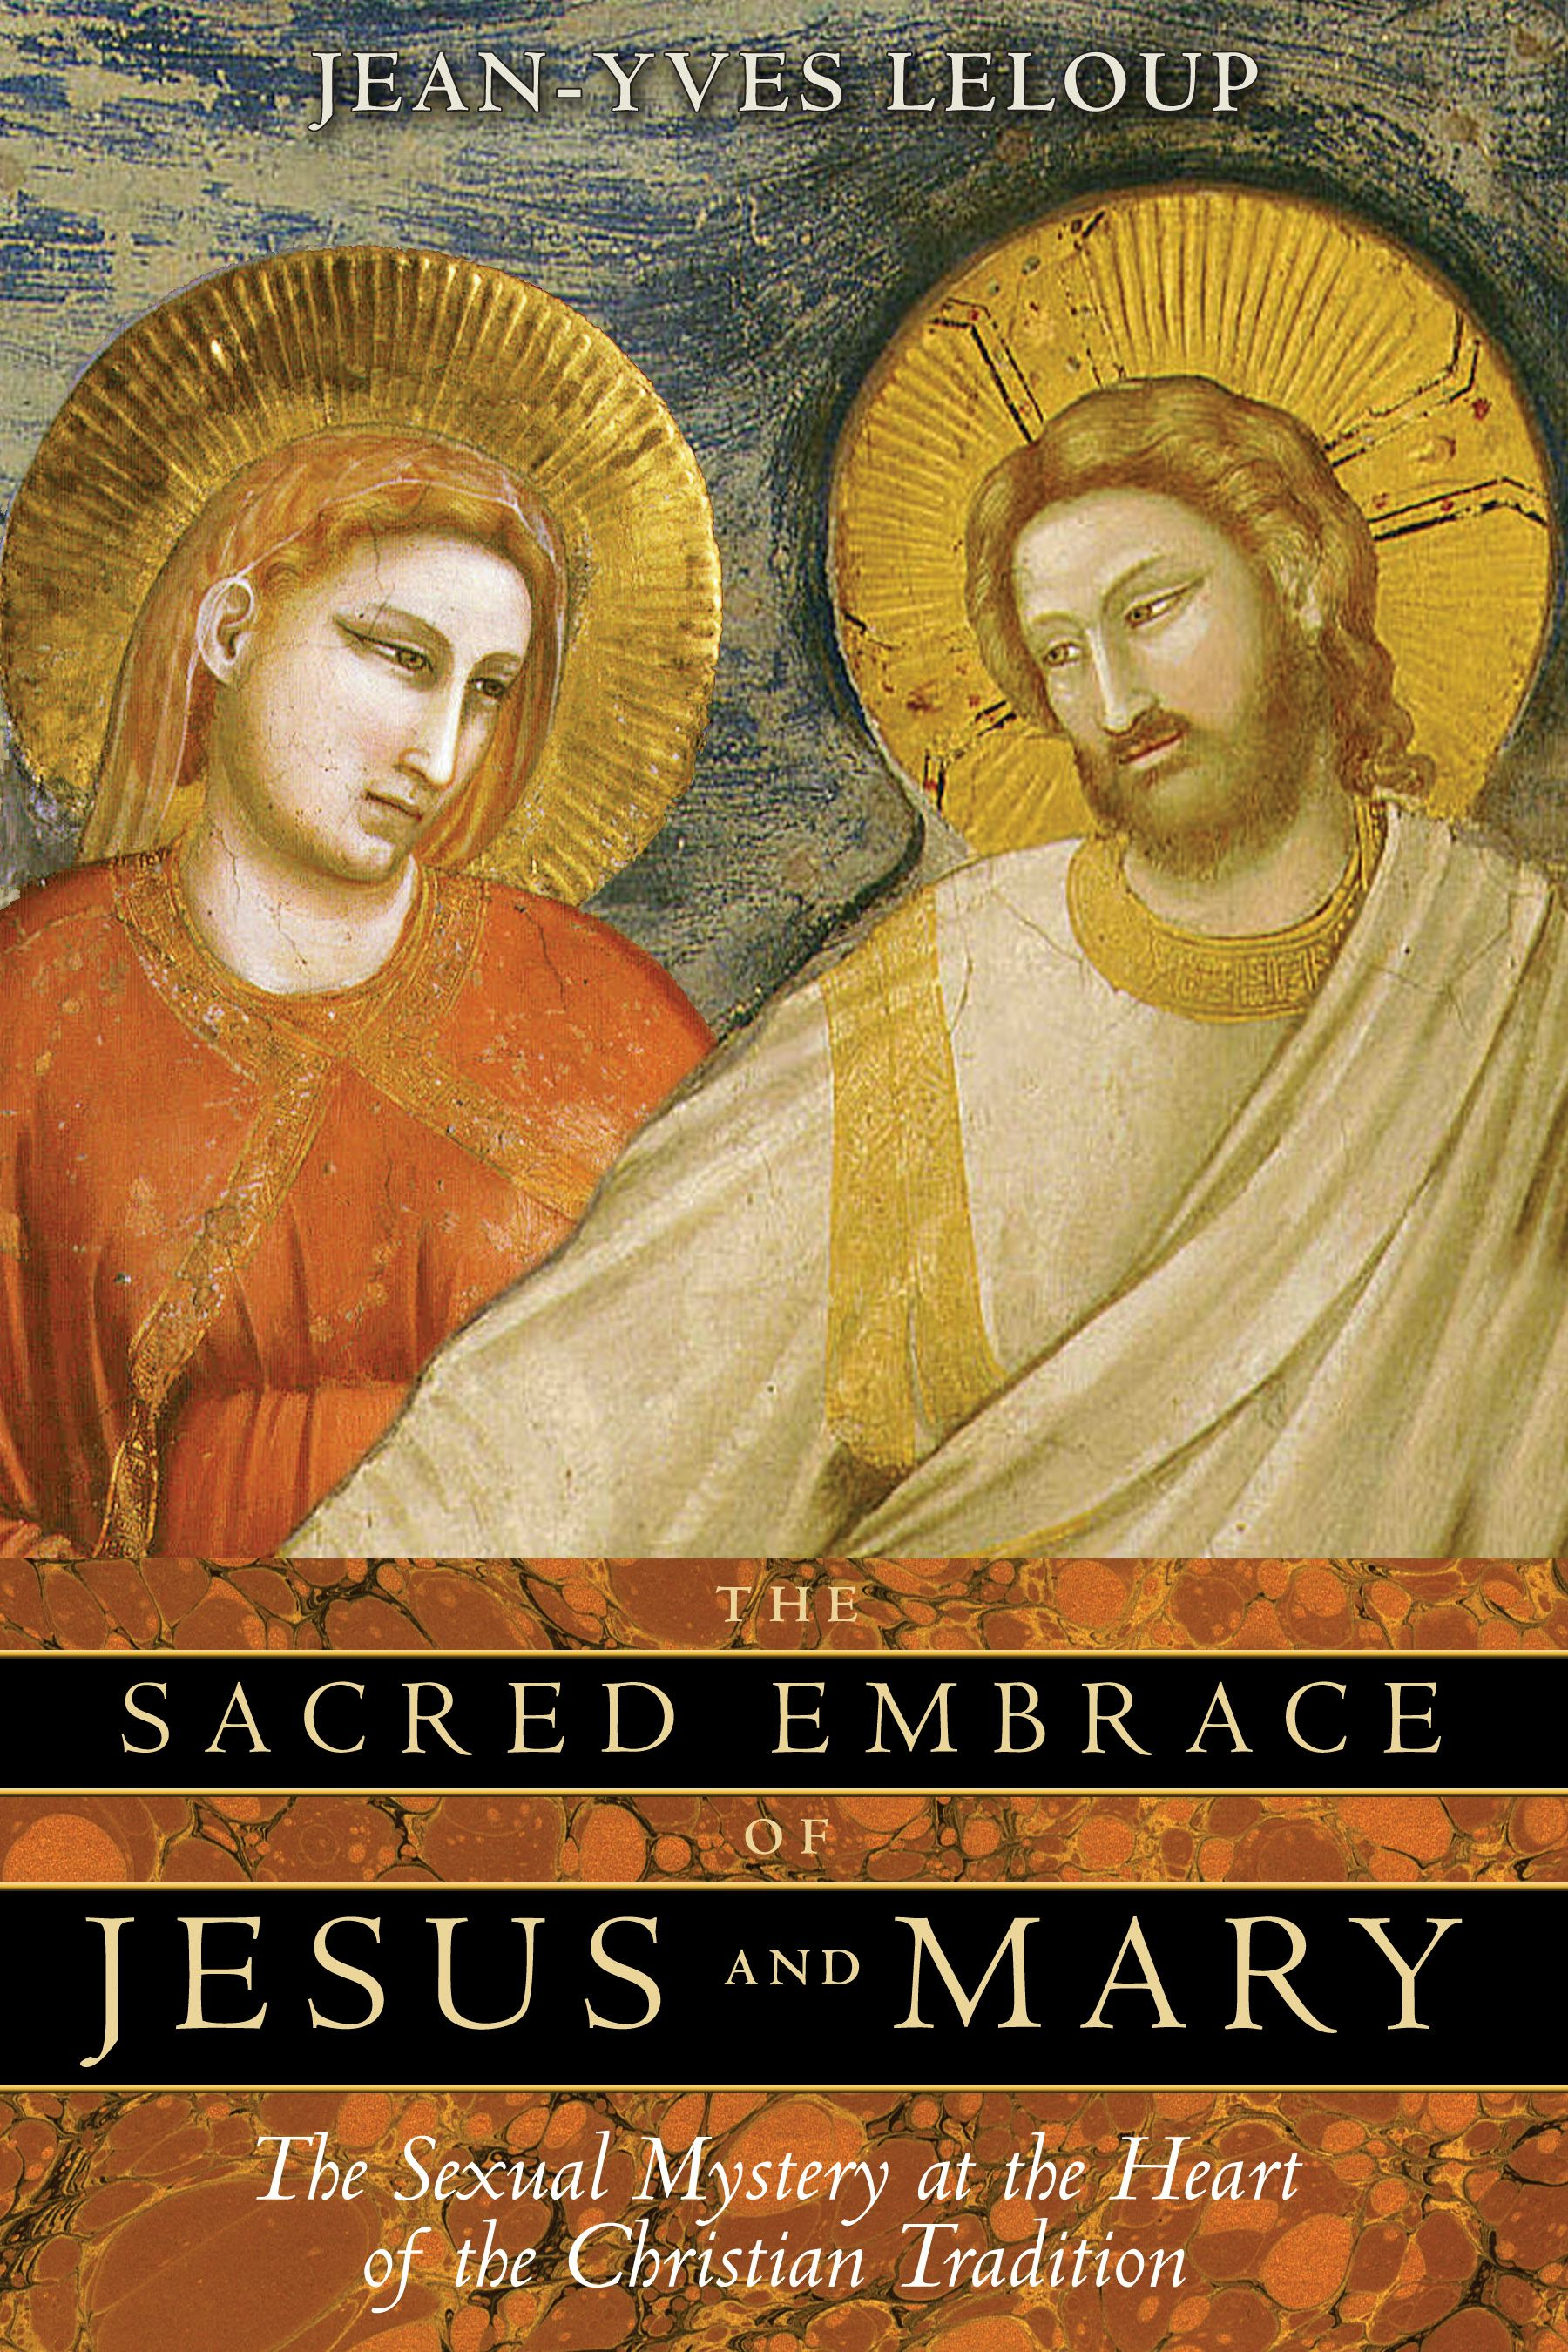 The-sacred-embrace-of-jesus-and-mary-9781594771019_hr